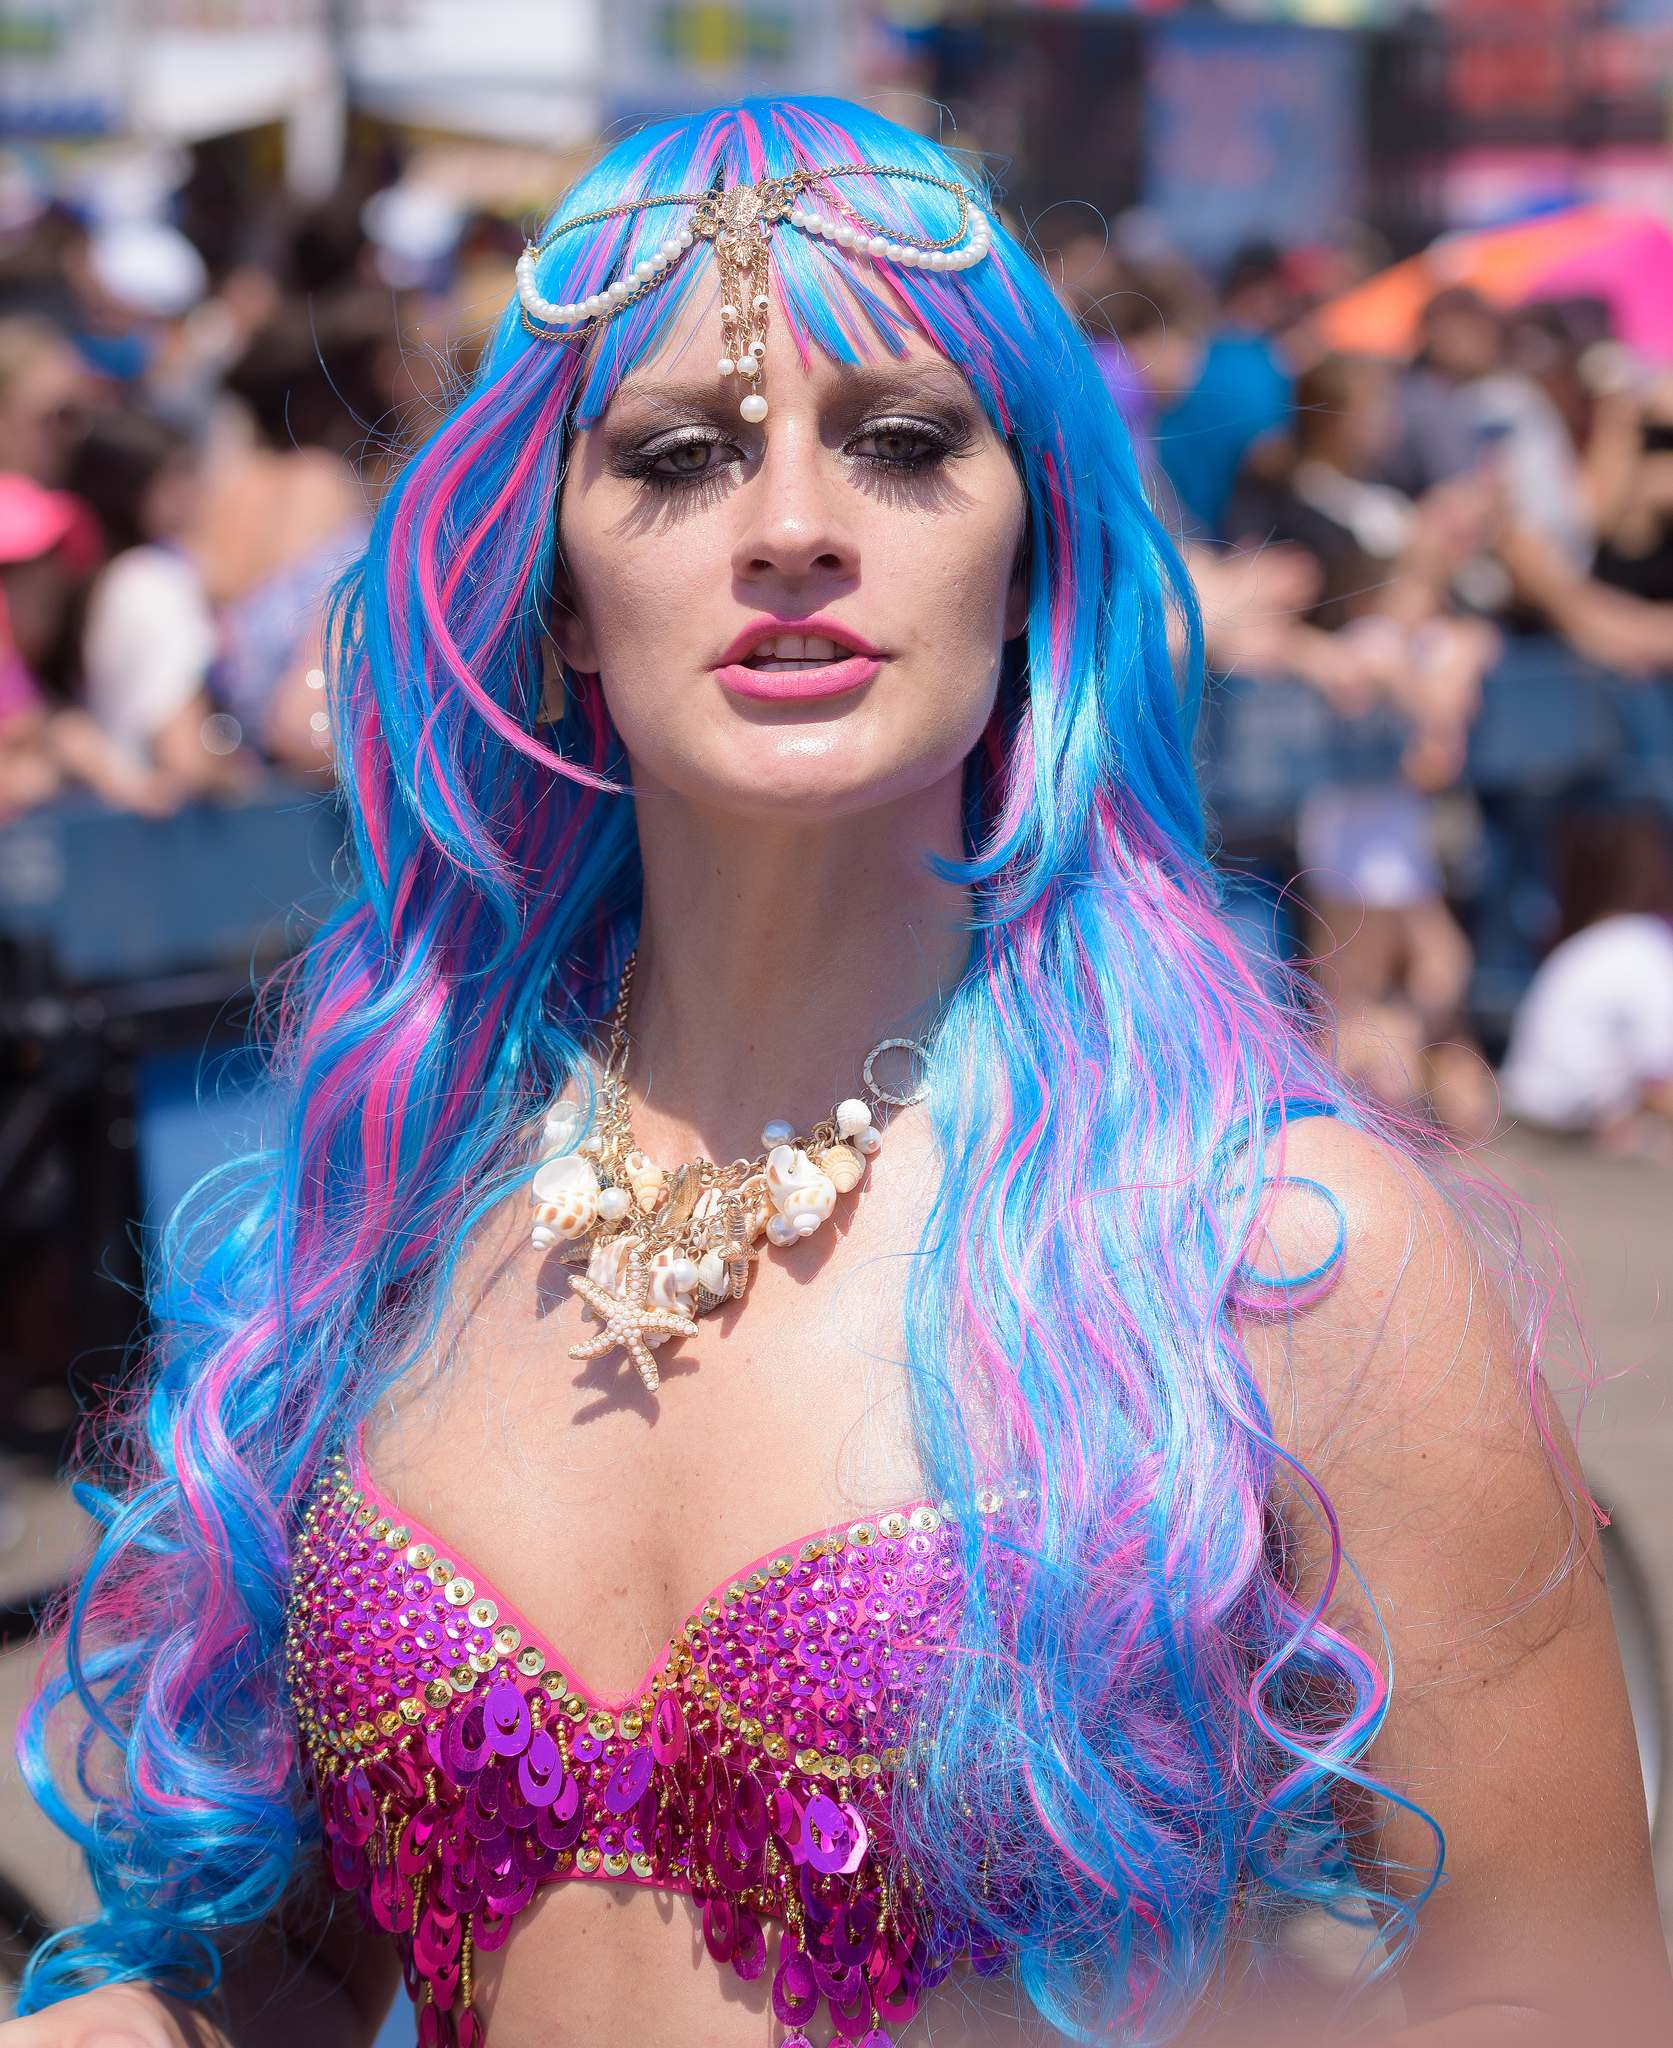 mermaid parade1 2016 Coney Island Mermaid Parade in NYC